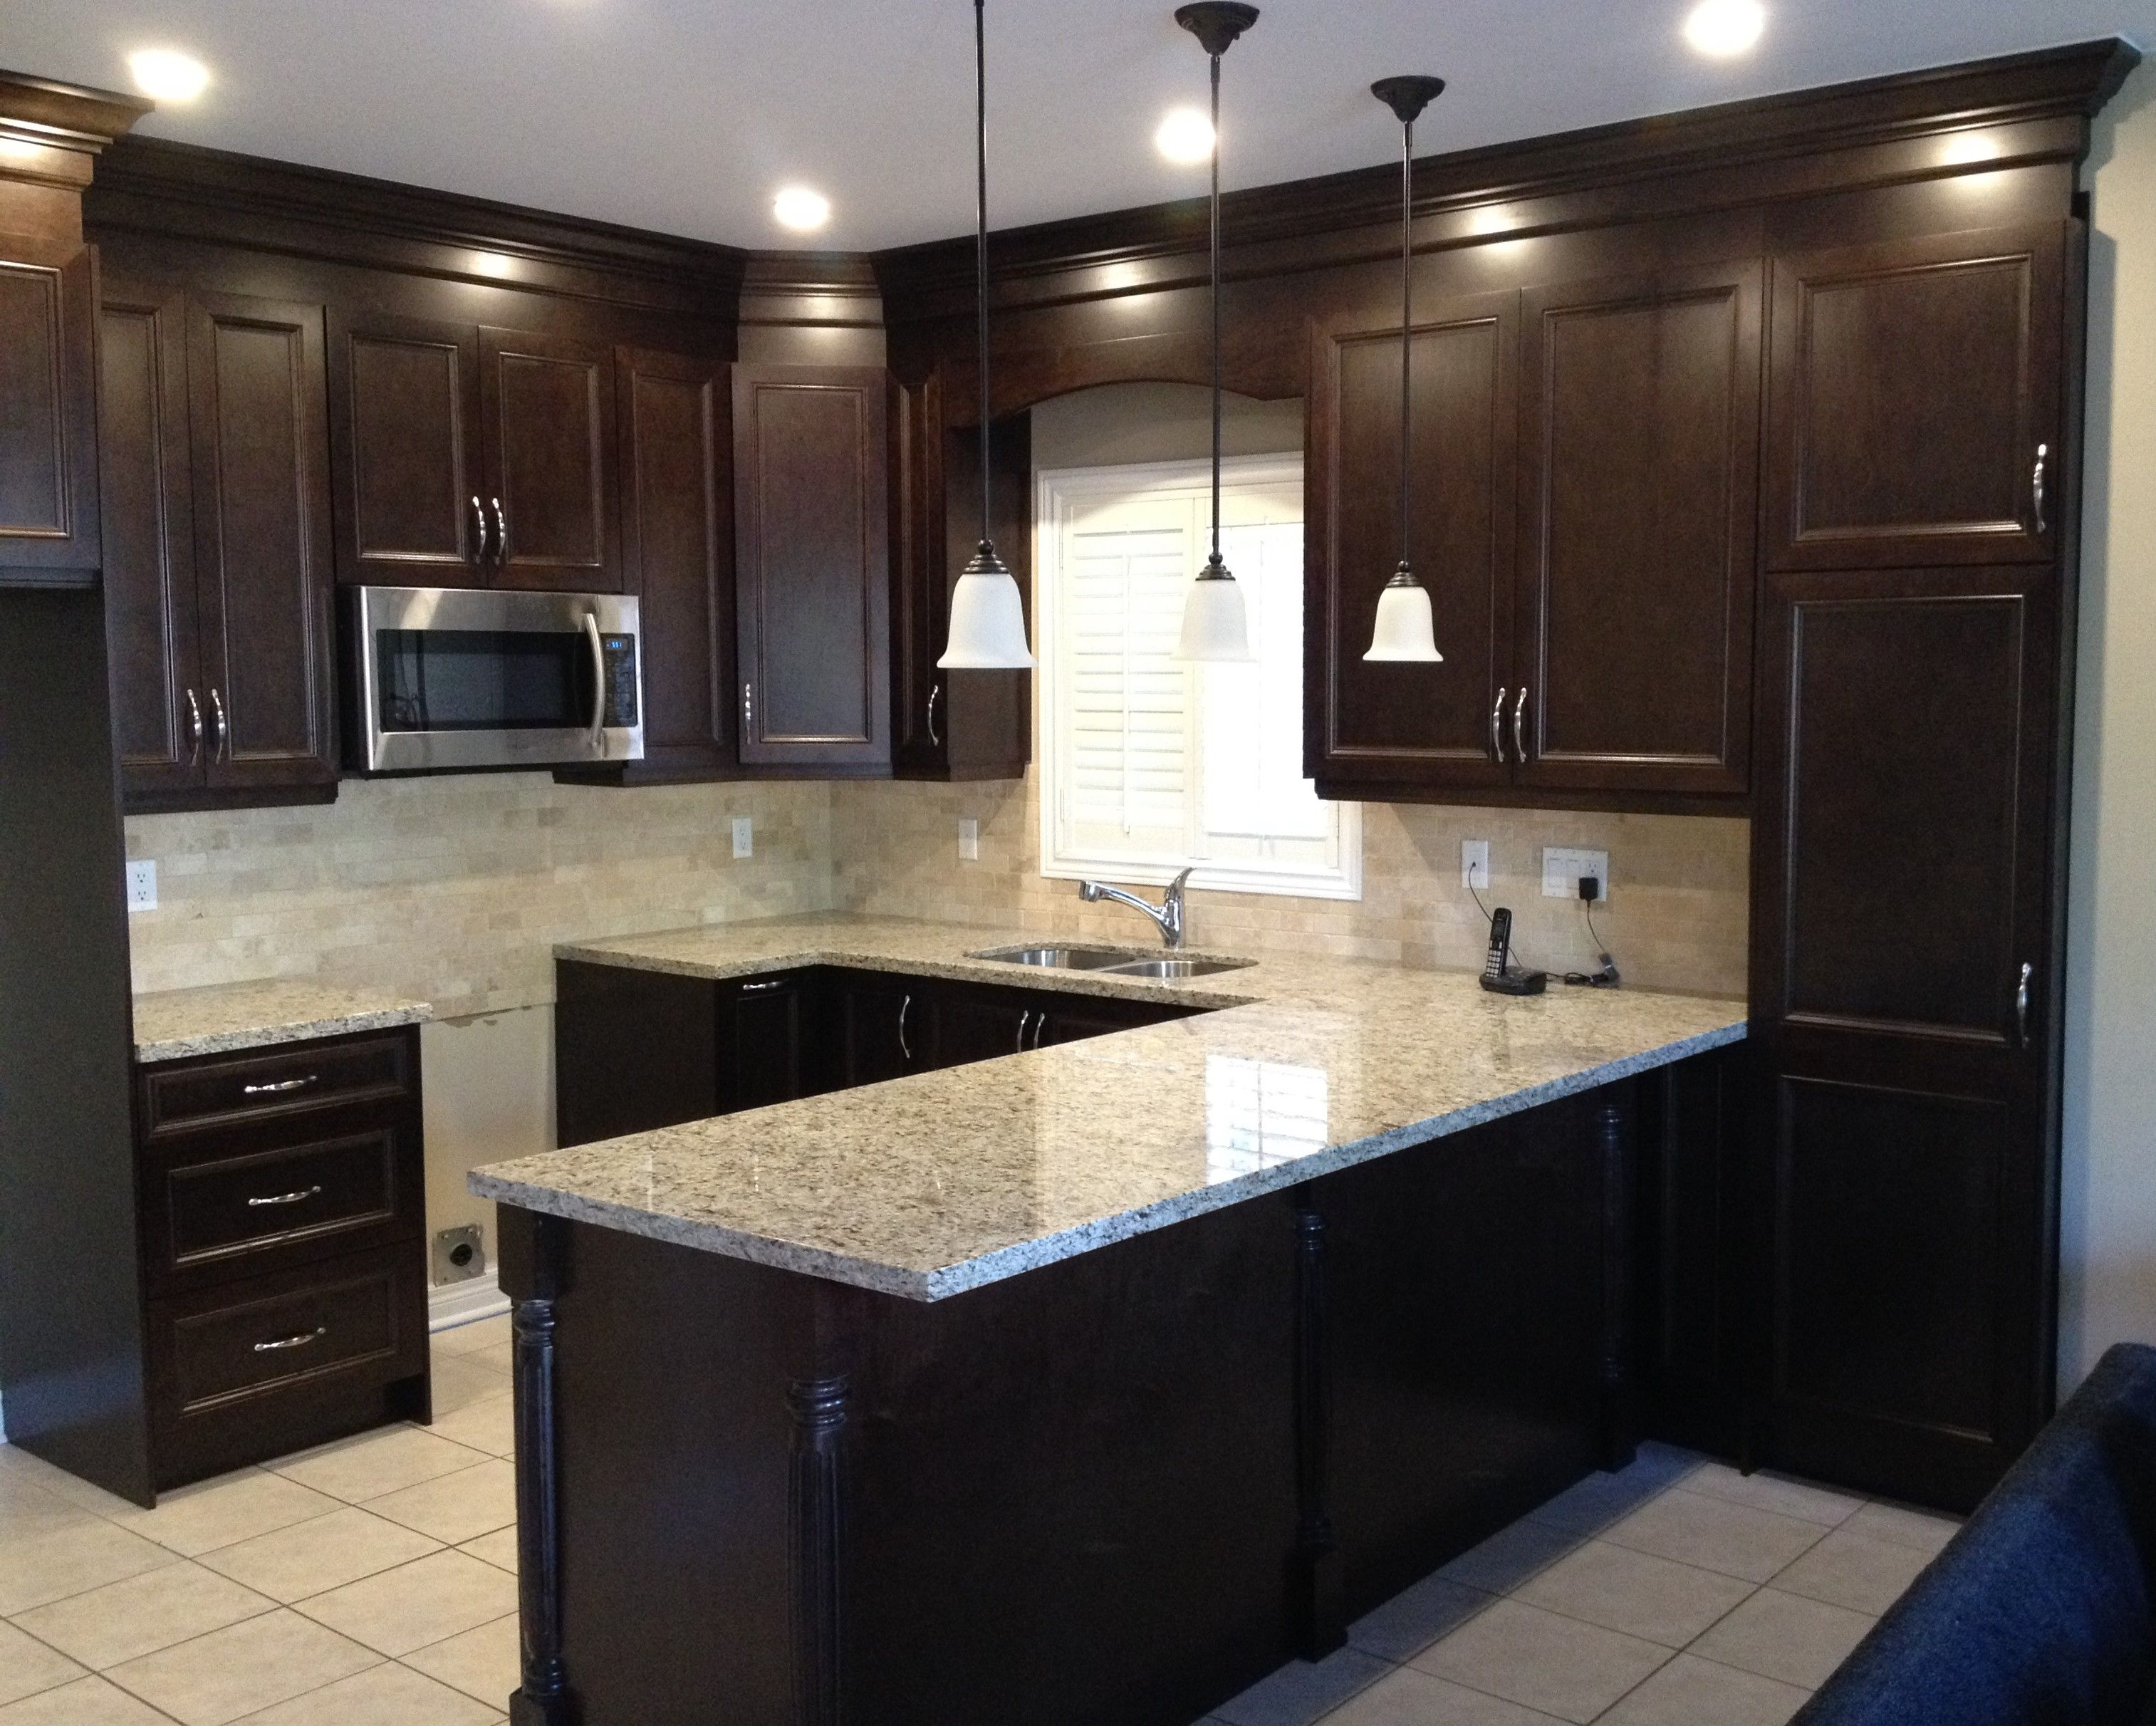 Dark kitchen cabinets give an elegant and sophisticated